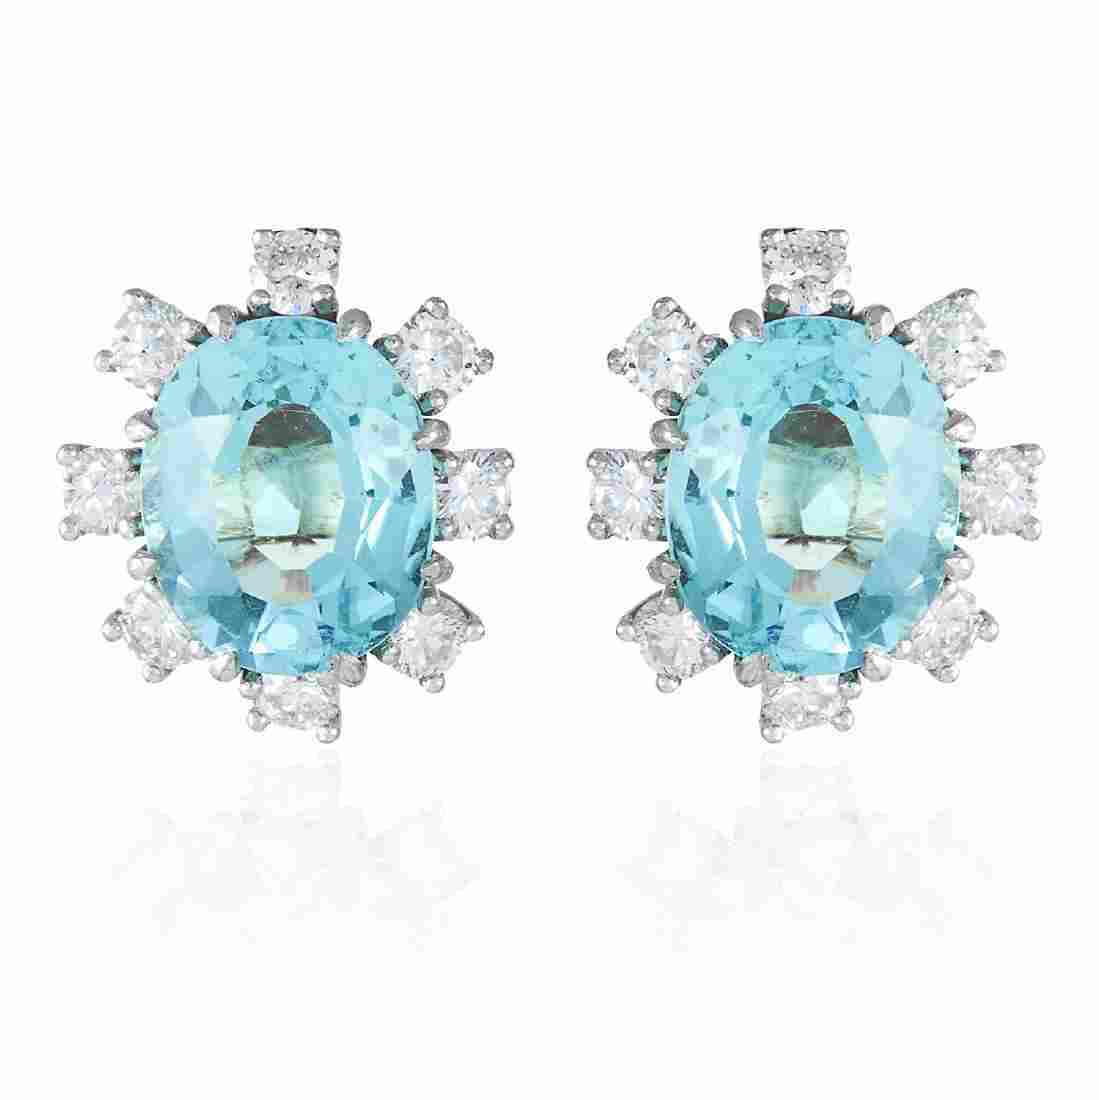 A PAIR OF AQUAMARINE AND DIAMOND STUD EARRINGS in 18ct